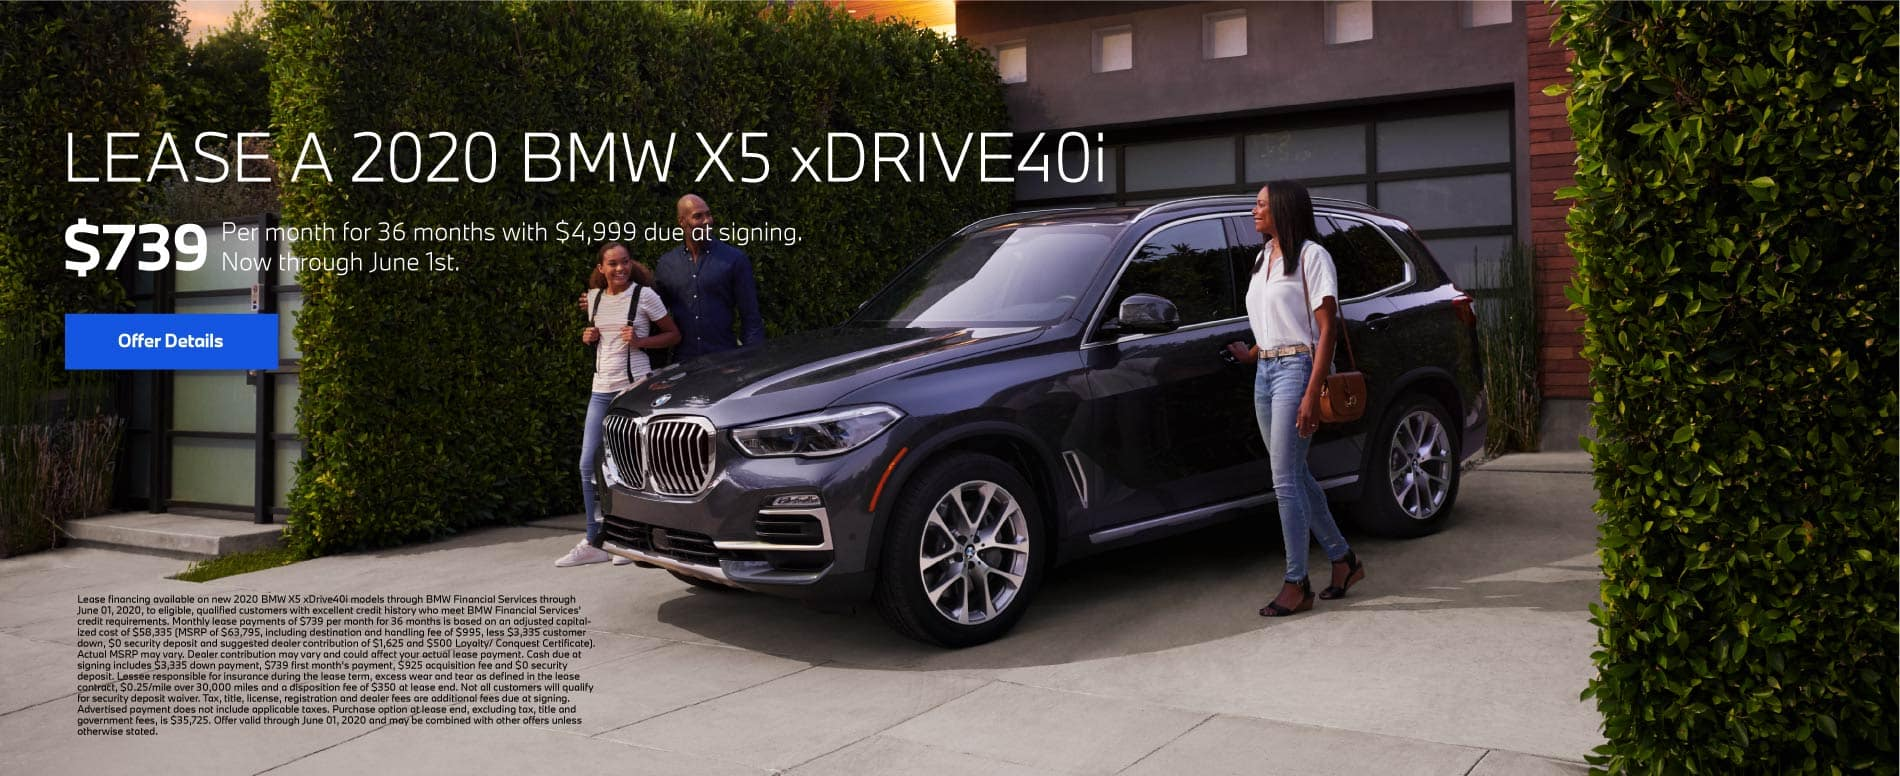 Lease a 2020 BMW X5 xDRIVE40i for $739 per month for 36 months with $4,999 due at signing - Click To View Inventory